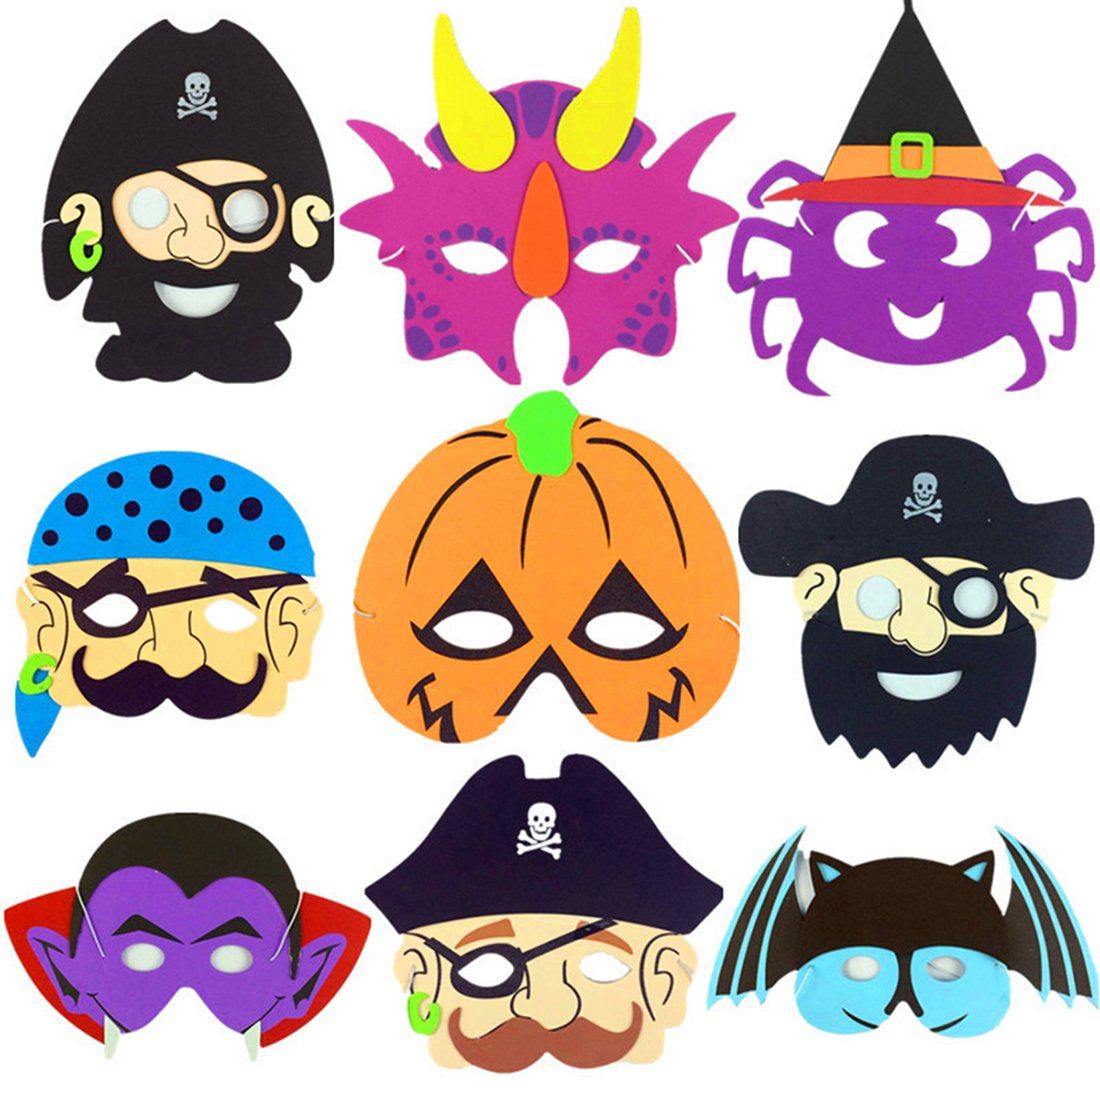 9PCS Halloween Mask Craft Kit - For Kids All Ages, Party, Halloween, Dress-Up, Prop, Costume With Elastic Strap